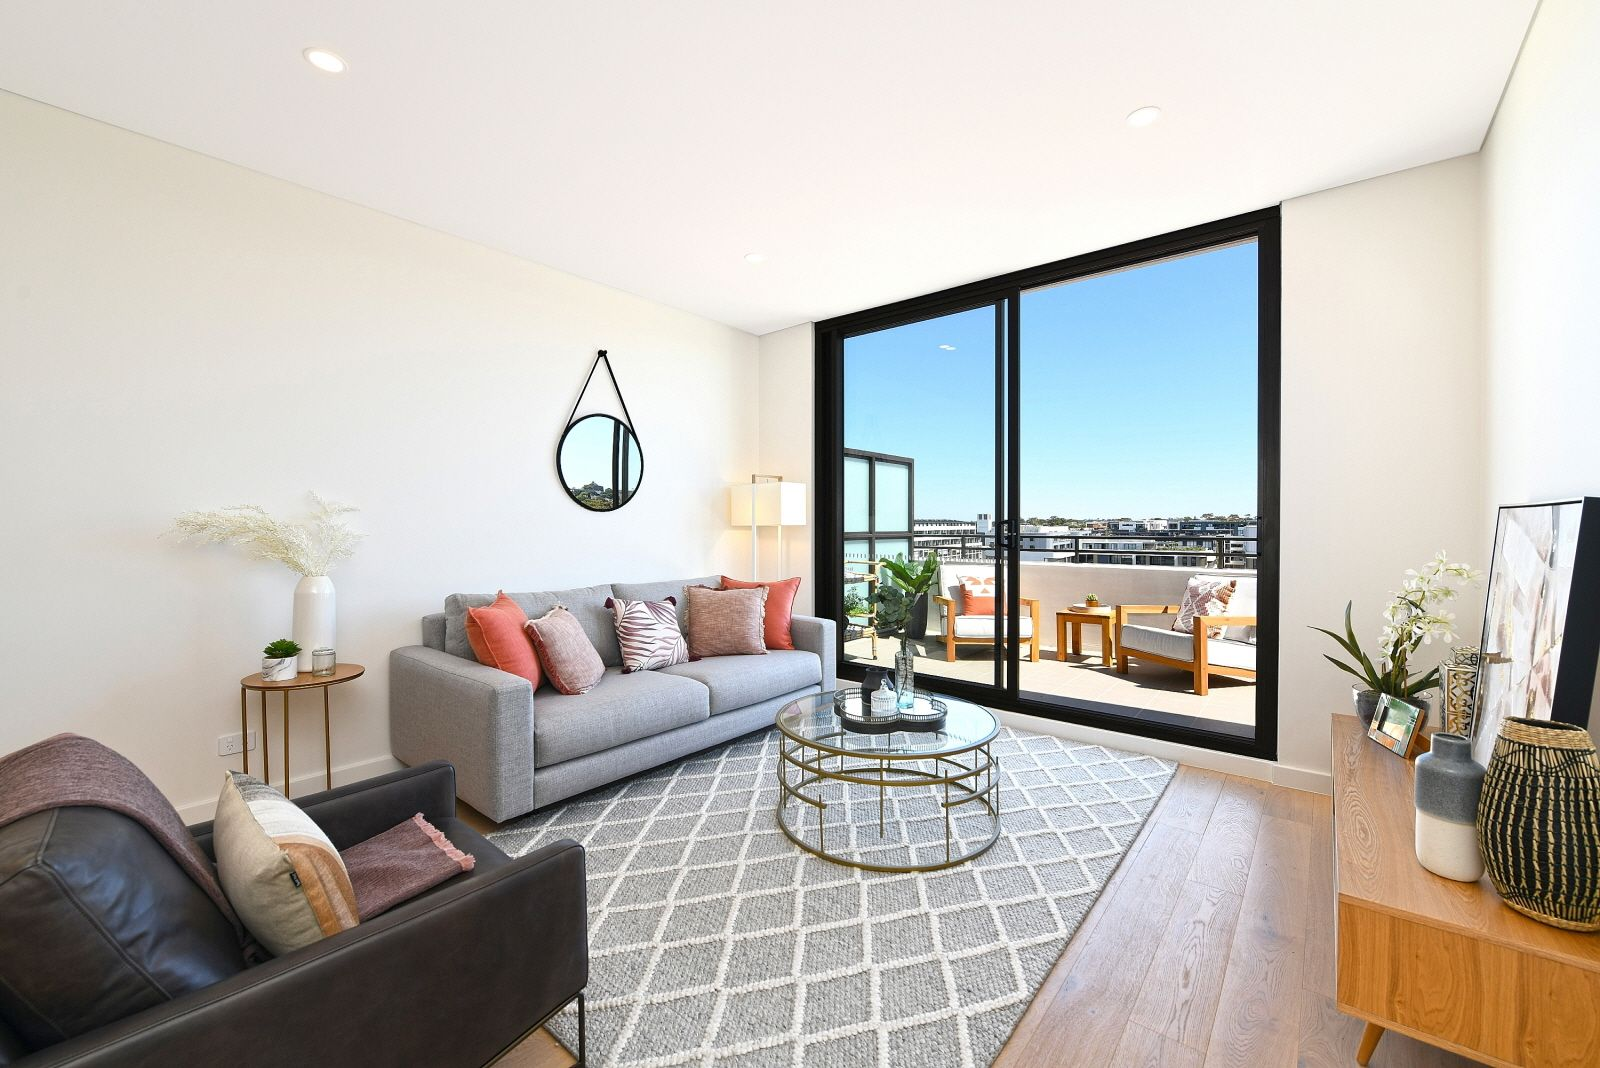 2 bedrooms Apartment / Unit / Flat in C804/2 Foundry St ERSKINEVILLE NSW, 2043